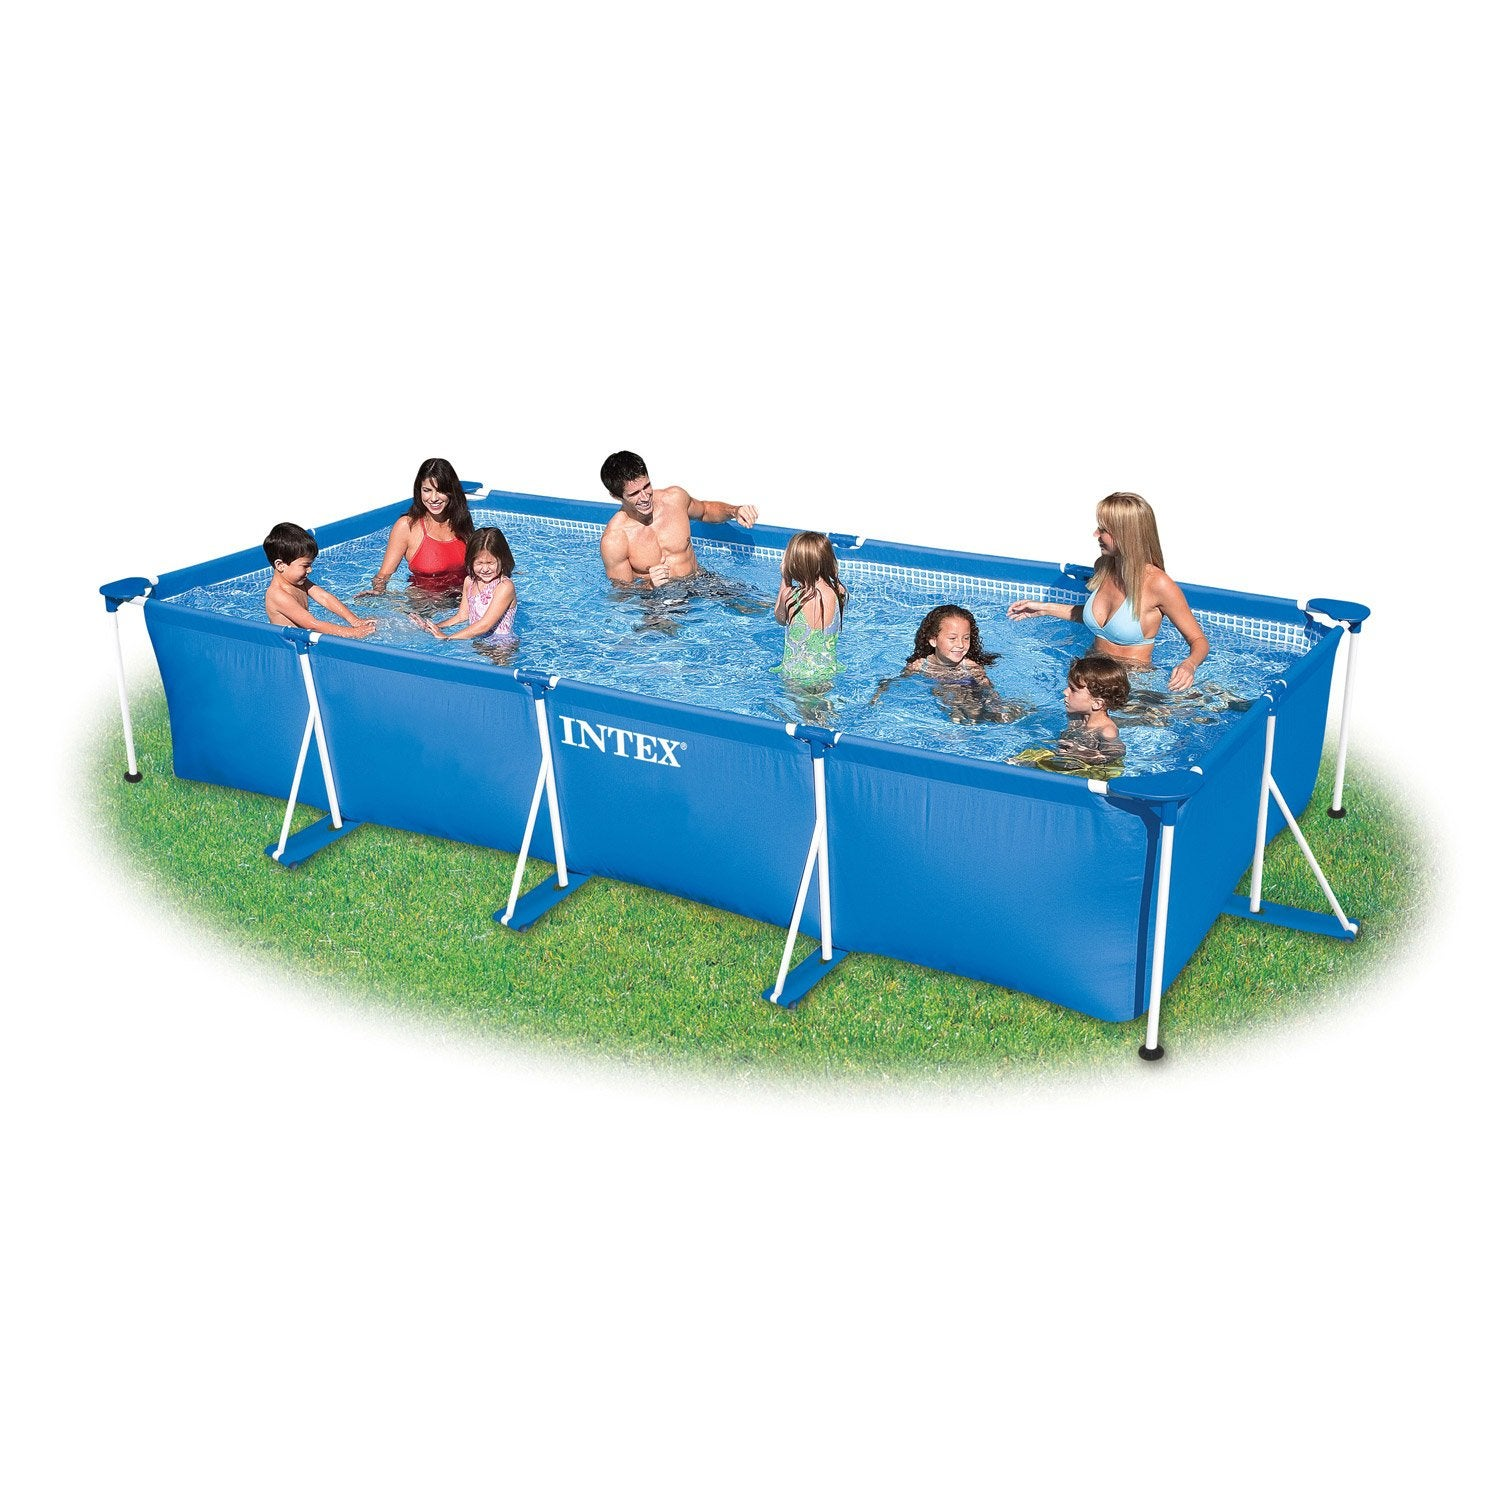 Piscine hors sol autoportante tubulaire intex l x l for Piscine hors sol rigide